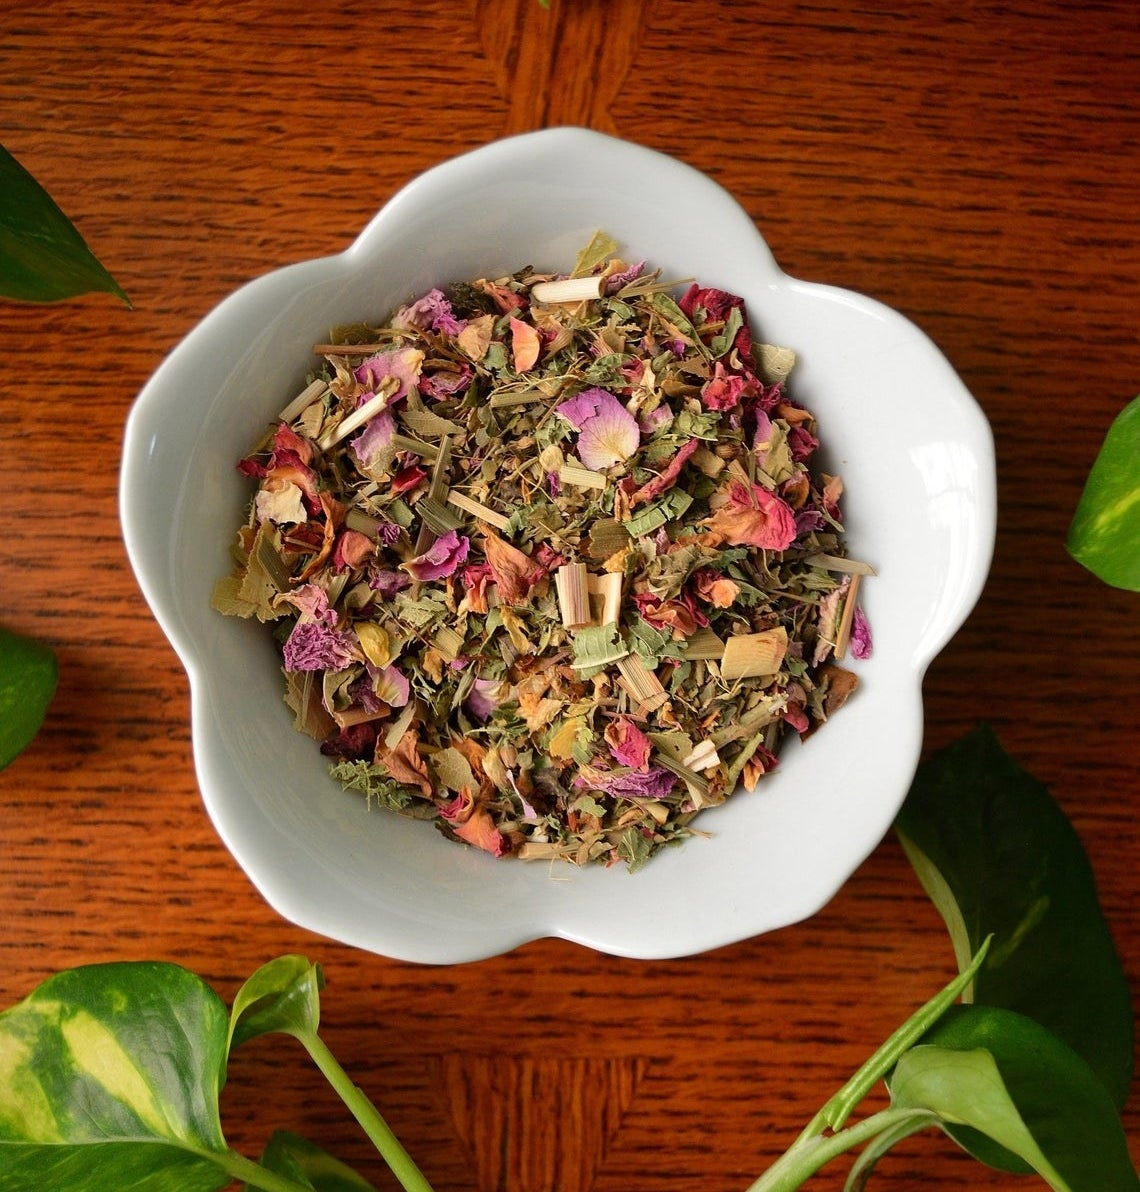 a bowl of loose tea with dried pink petals in it